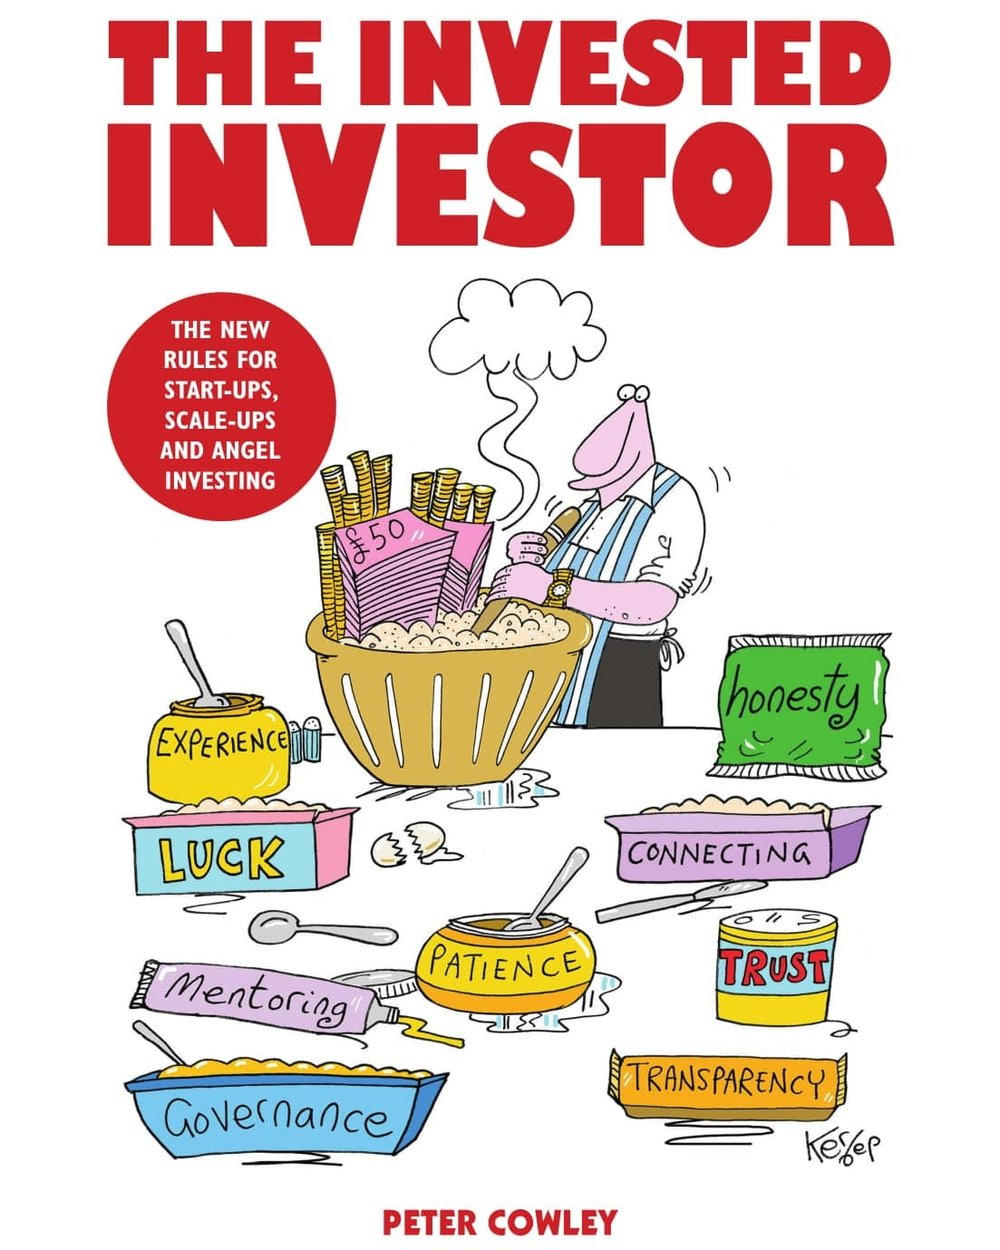 Invested Investor Cover-2 FINAL VERSION-1-min.jpg